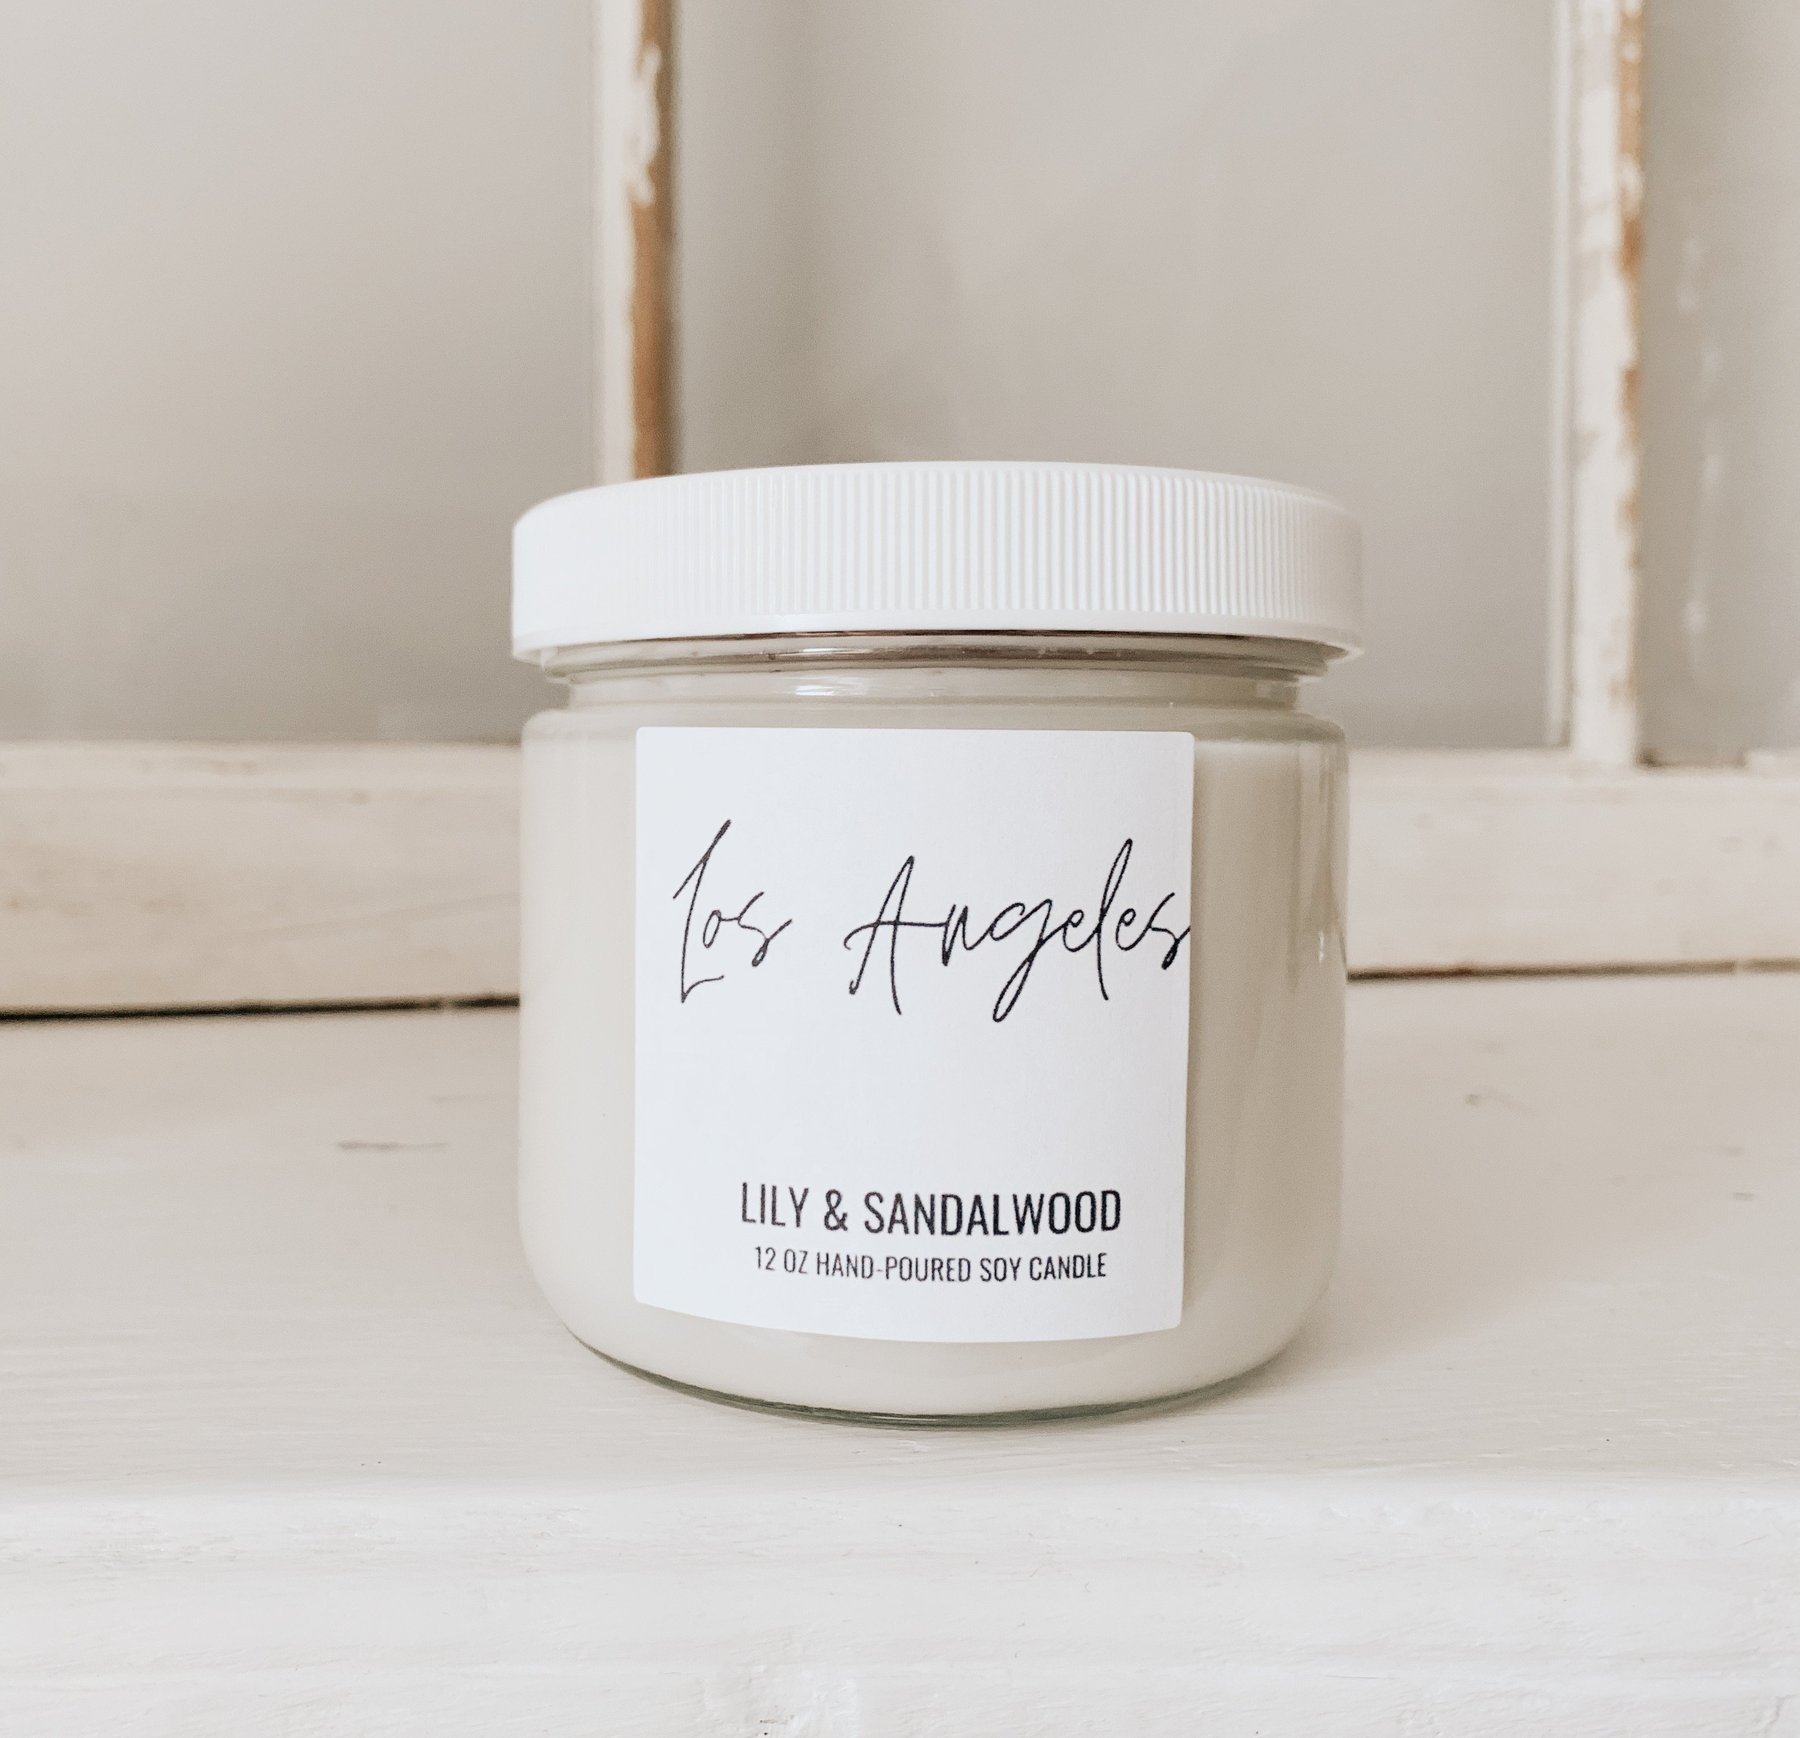 Los Angeles Sandalwood, Lily, Violet, Jasmine, Lily-of-the-valley, Rose, Geranium and Musk.